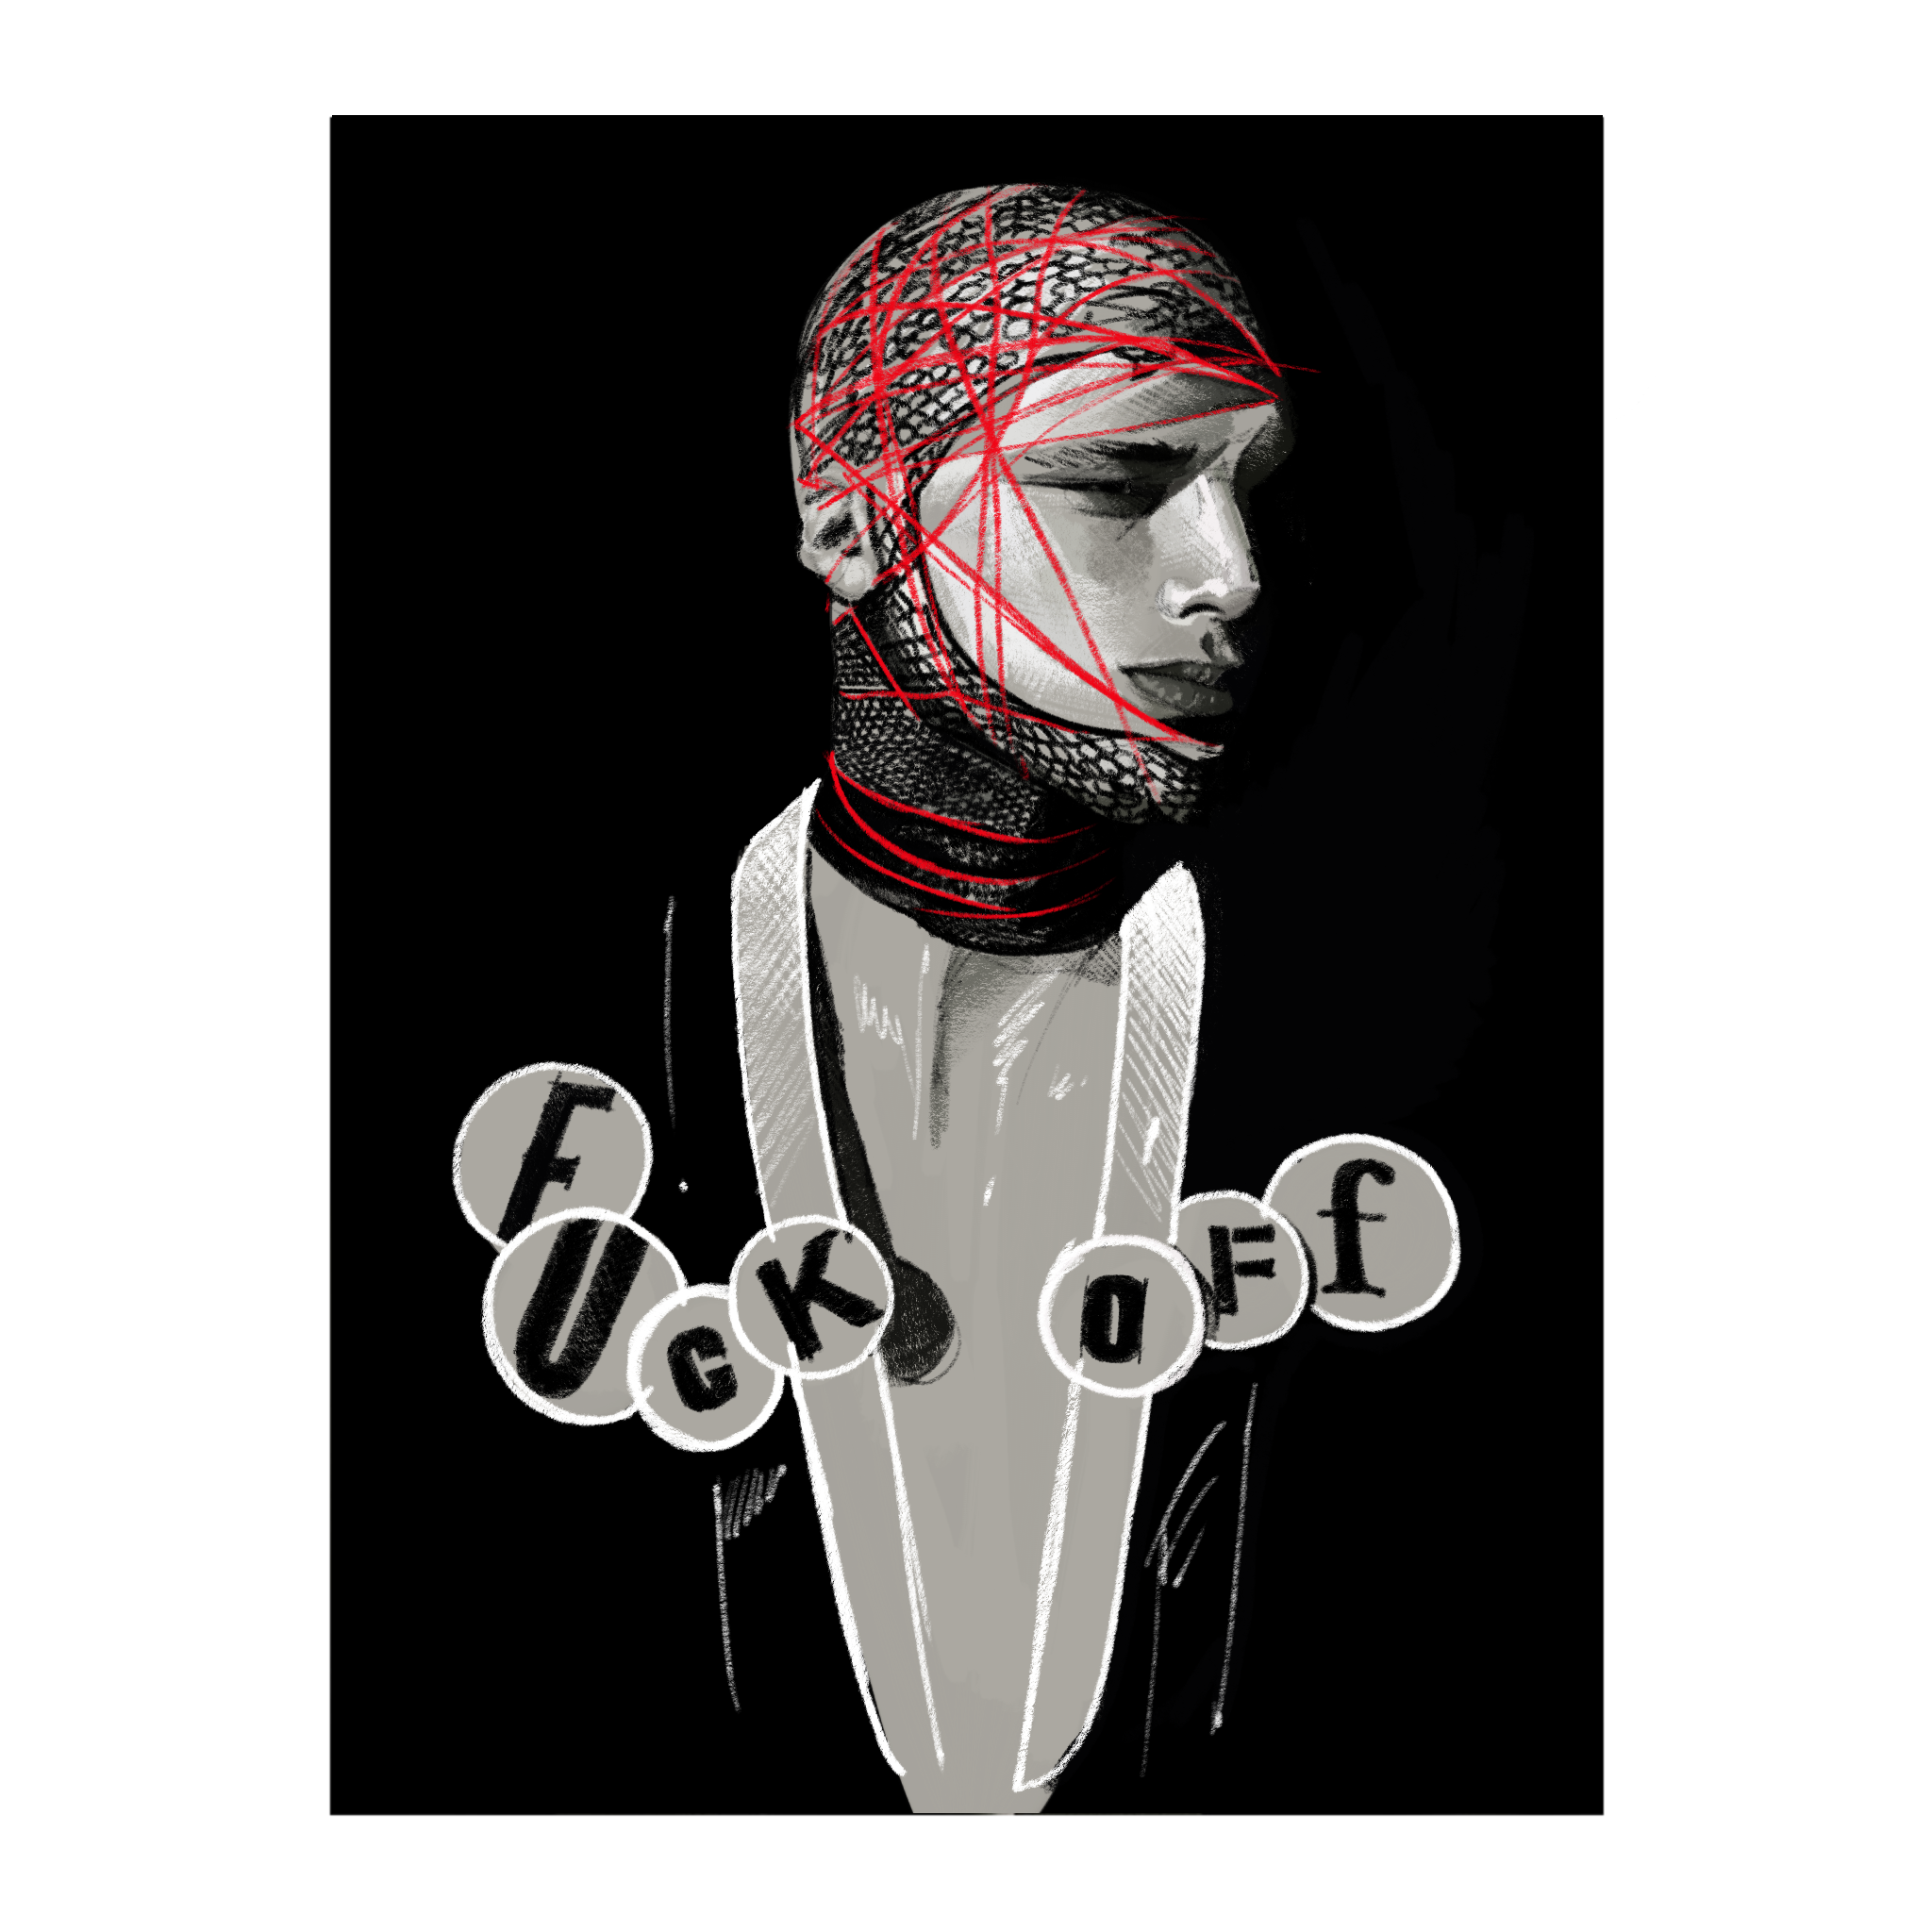 Illustration by  Fernando Monroy  based on a photograph by  William Baker,  Style Direction Judy Blame from i-D